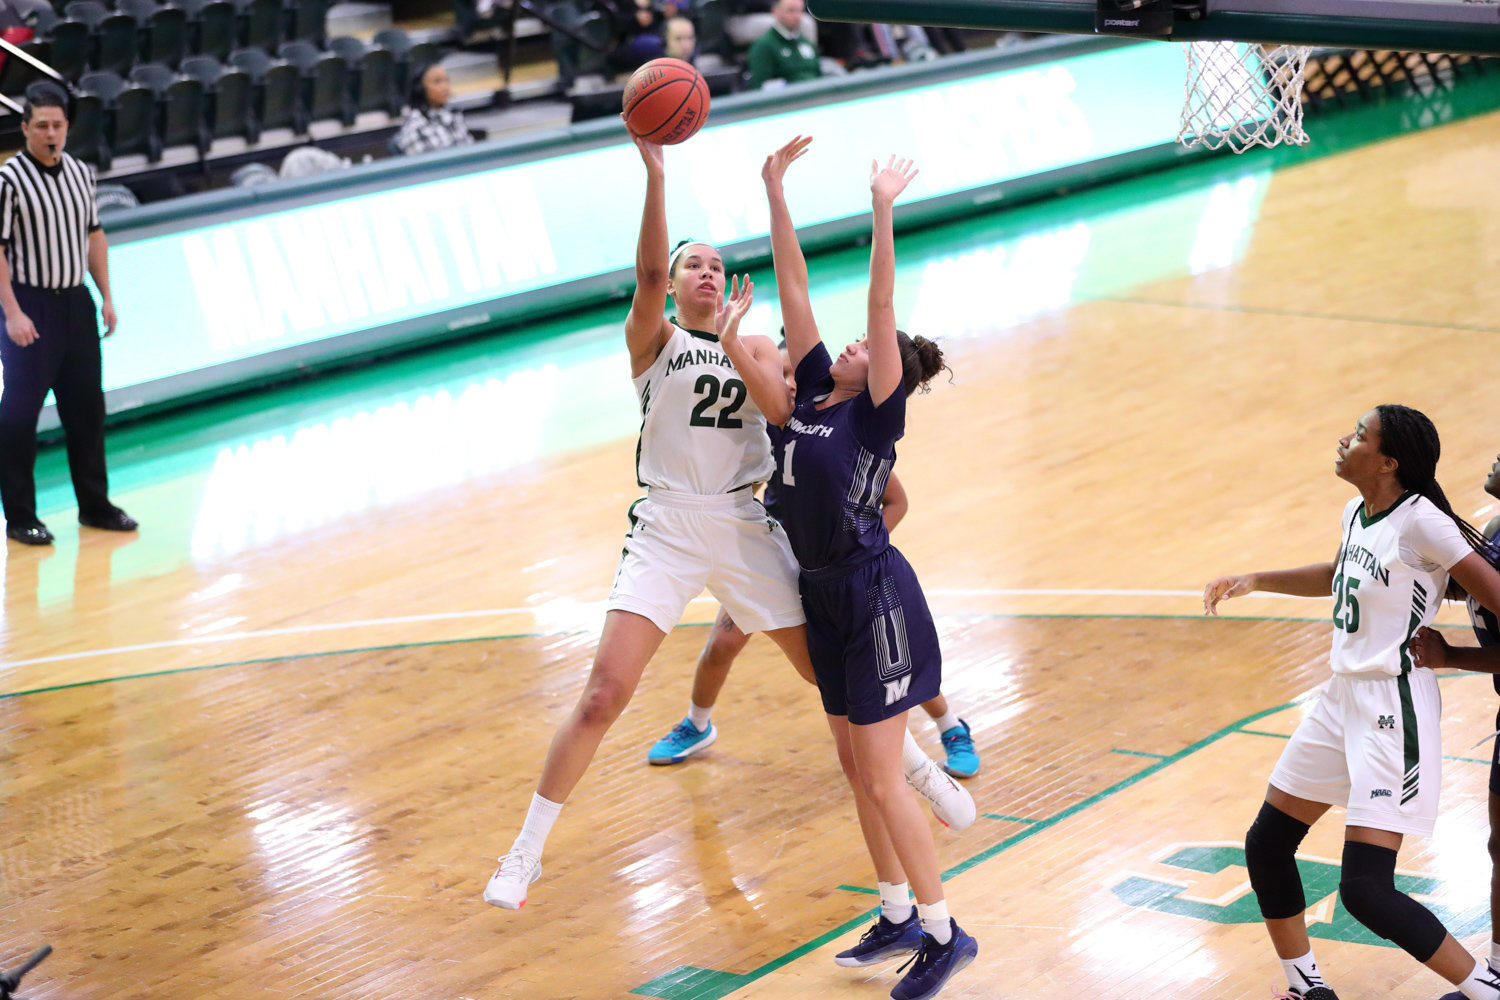 Manhattan junior Courtney Warley was second on the team in scoring (11.6 points a game) and tops in rebounding (8.8 boards per outing) for the Jaspers this season. But she was unable to add to her impressive stats last week when the MAAC tournament was shuttered due to the coronavirus pandemic.